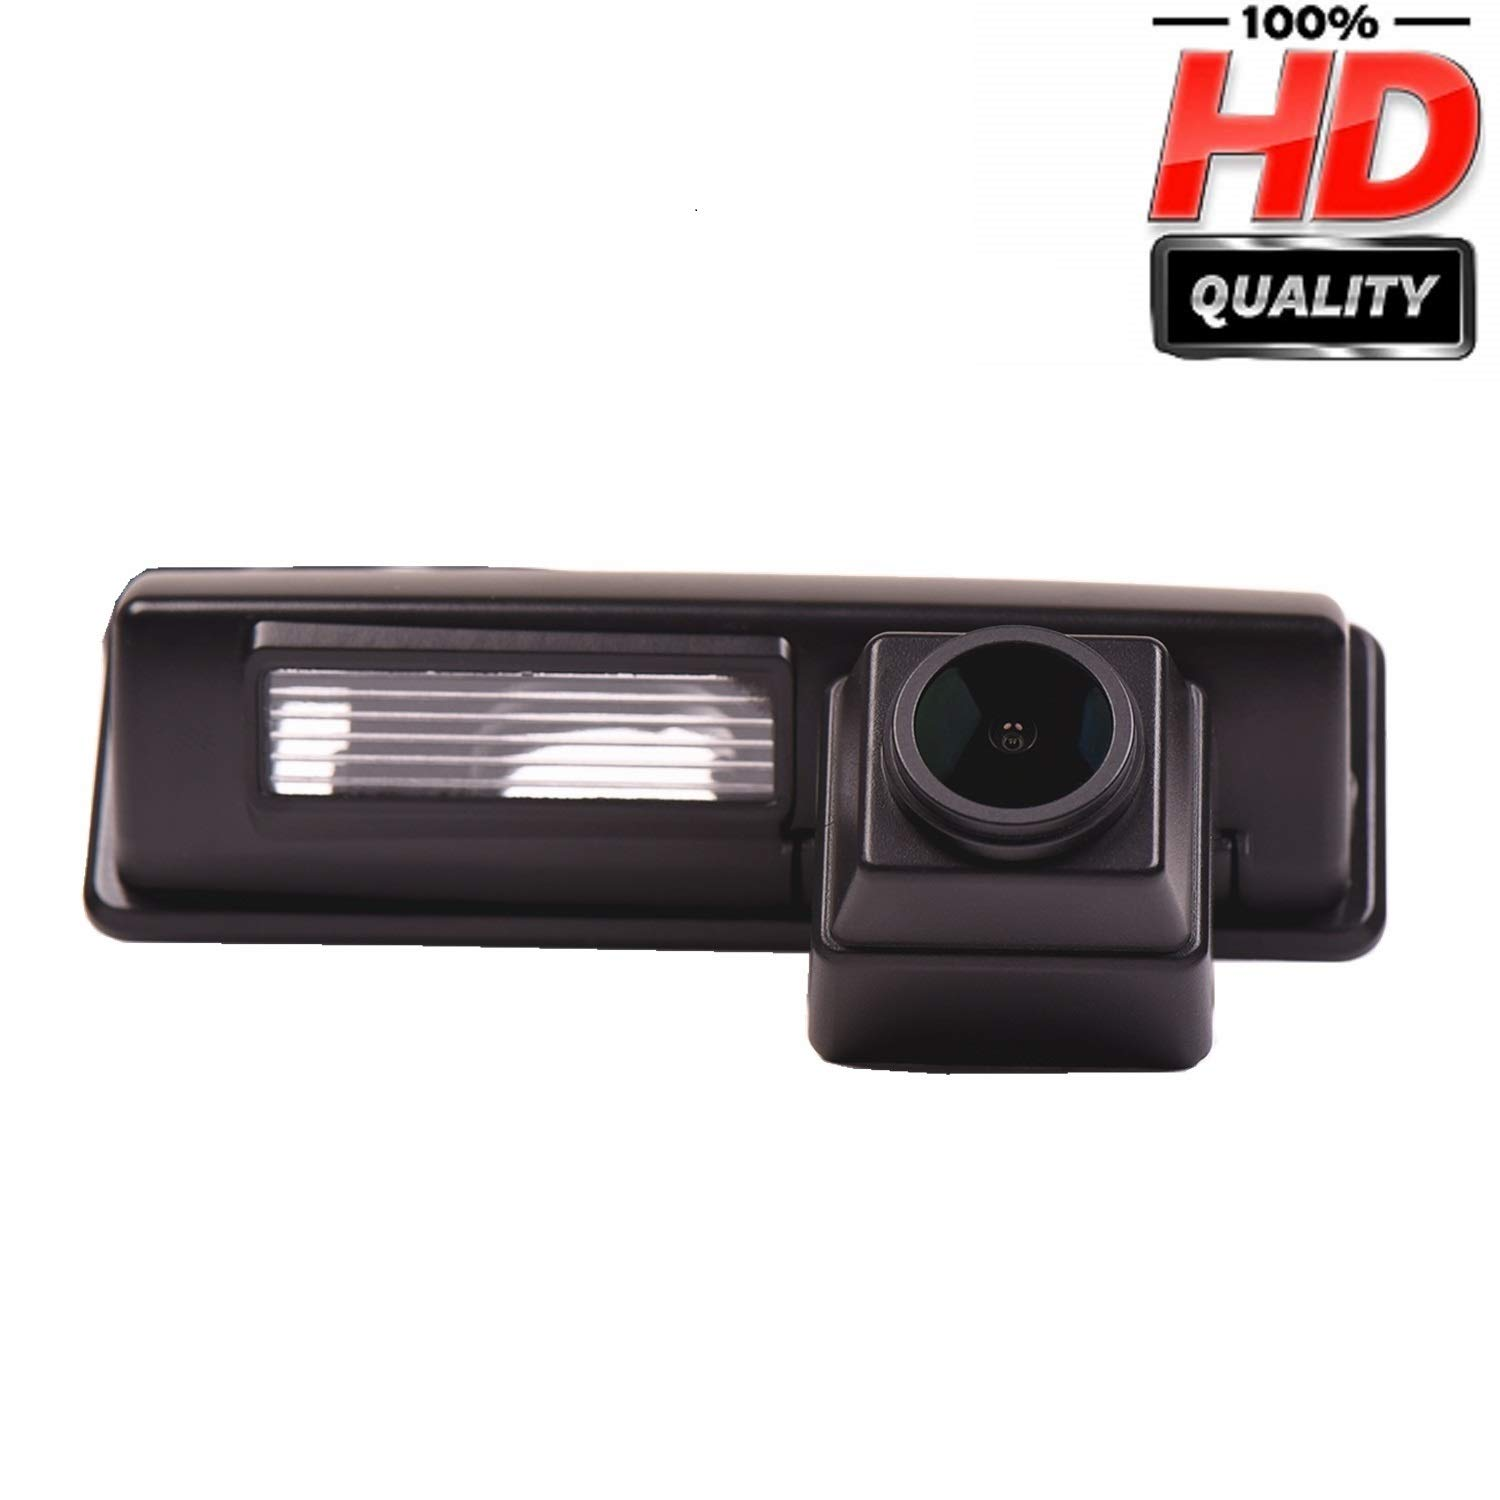 Aurion//Avensis //2002~2012 Rear Reversing Backup Camera Rearview License Plate Replacement Camera Night Vision Ip69k Waterproof for Toyota Camry XV30 //XV40